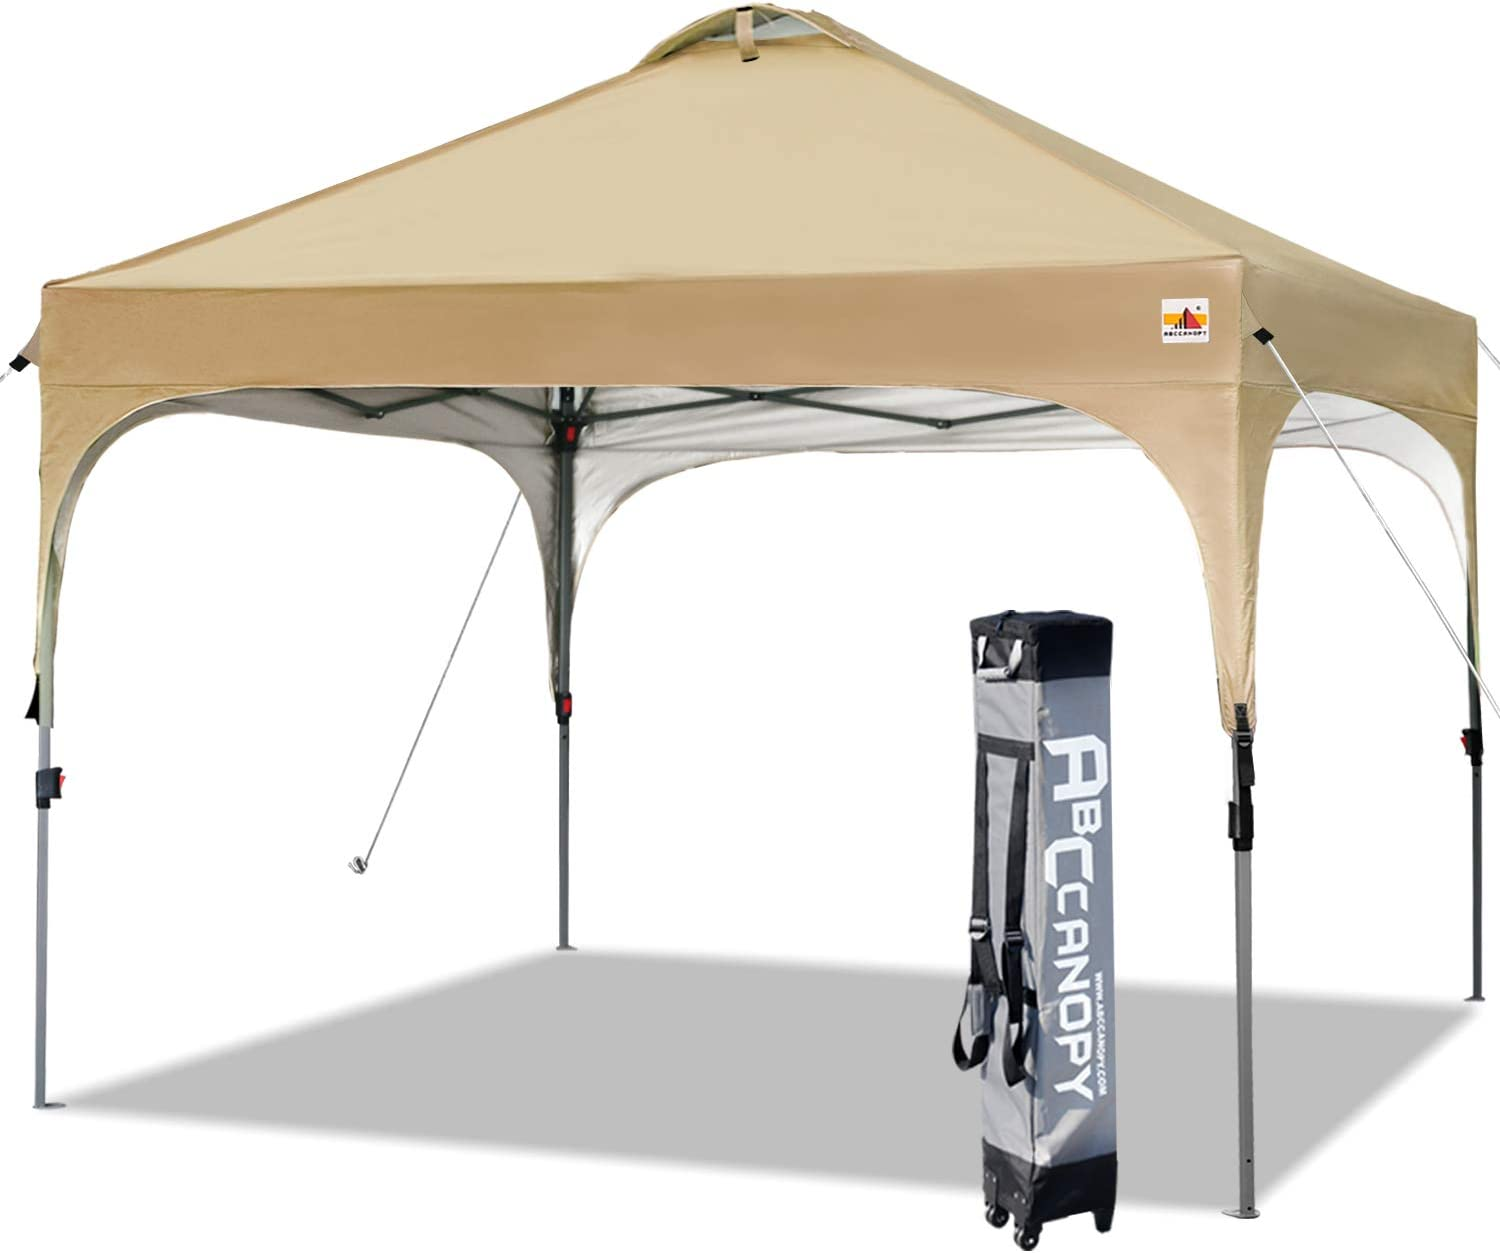 ABCCANOPY Canopy Tent 10×10 Pop Up Canopy Outdoor Canopies Portable Tent Popup Beach Canopy Shade Canopy Tent with Wheeled Carry Bag Bonus 4 Weight Bags, 4 x Ropes 4 x Stakes, Beige